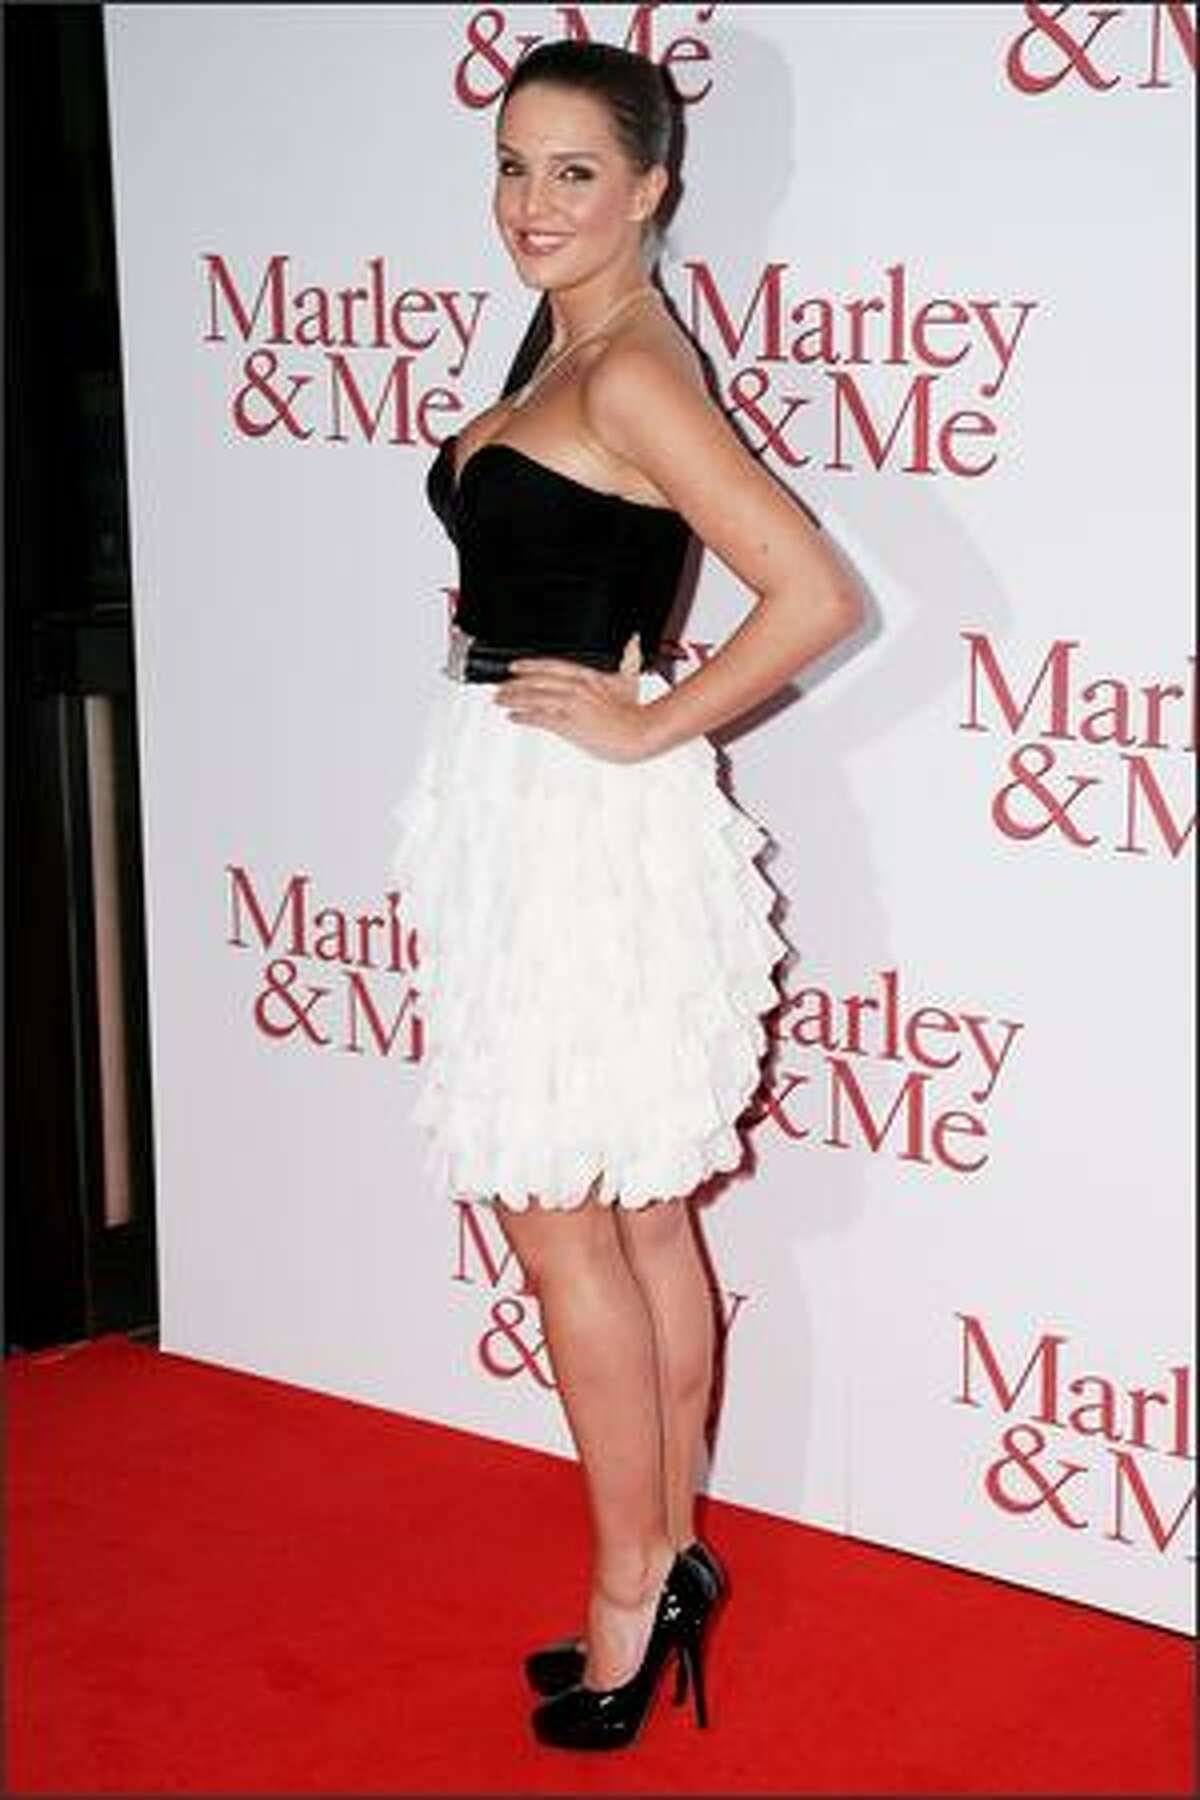 Danielle Lloyd attends the UK premiere of Marley and Me held at The Vue Cinema, Leicester Square on March 2, 2009 in London, England.